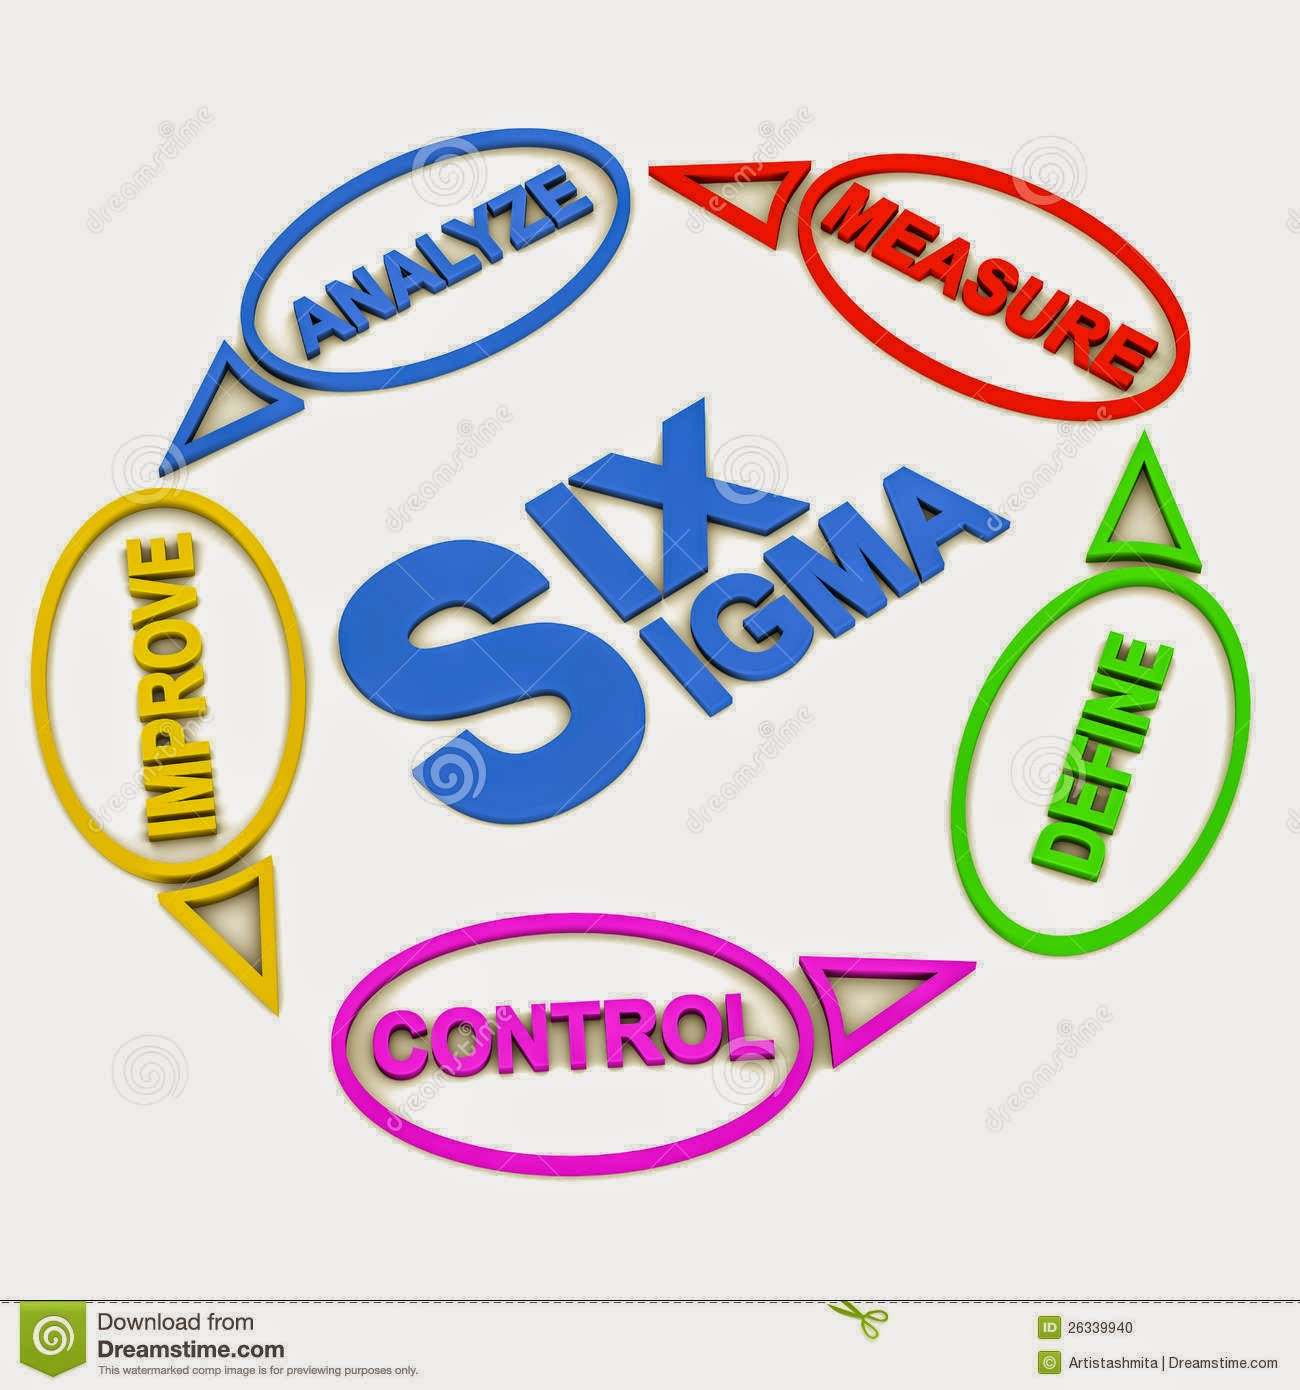 Six sigma training in noida gurgaondelhiindia httpwww the six sigma is a methodology to eliminate errors from every part of a program by analyzing each of its processes in their ongoing state xflitez Choice Image